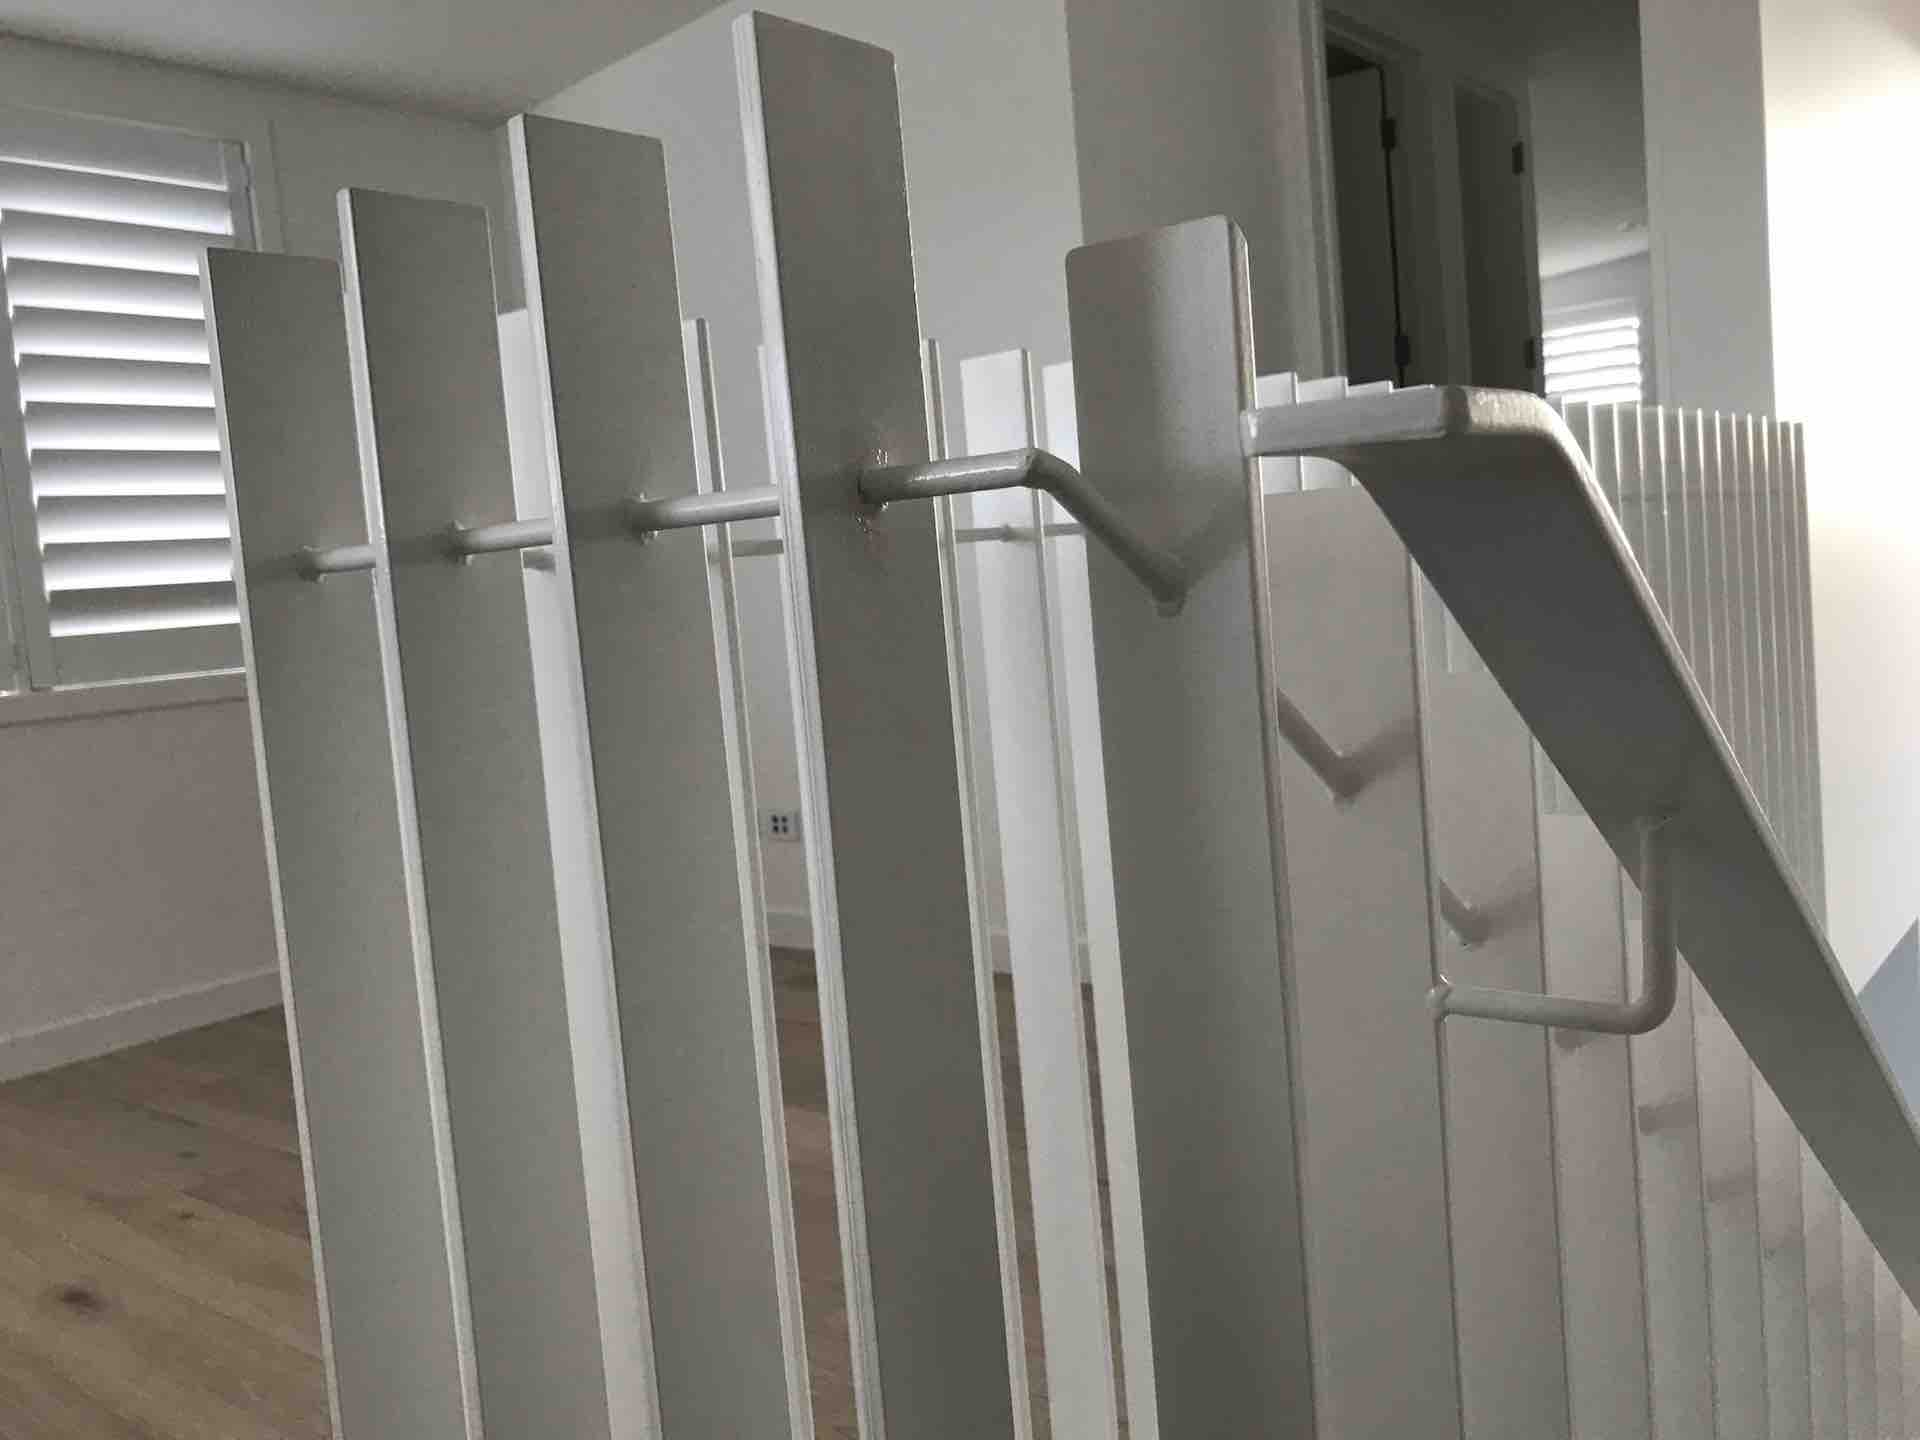 Flat steel welded to create white balustrade for staircase